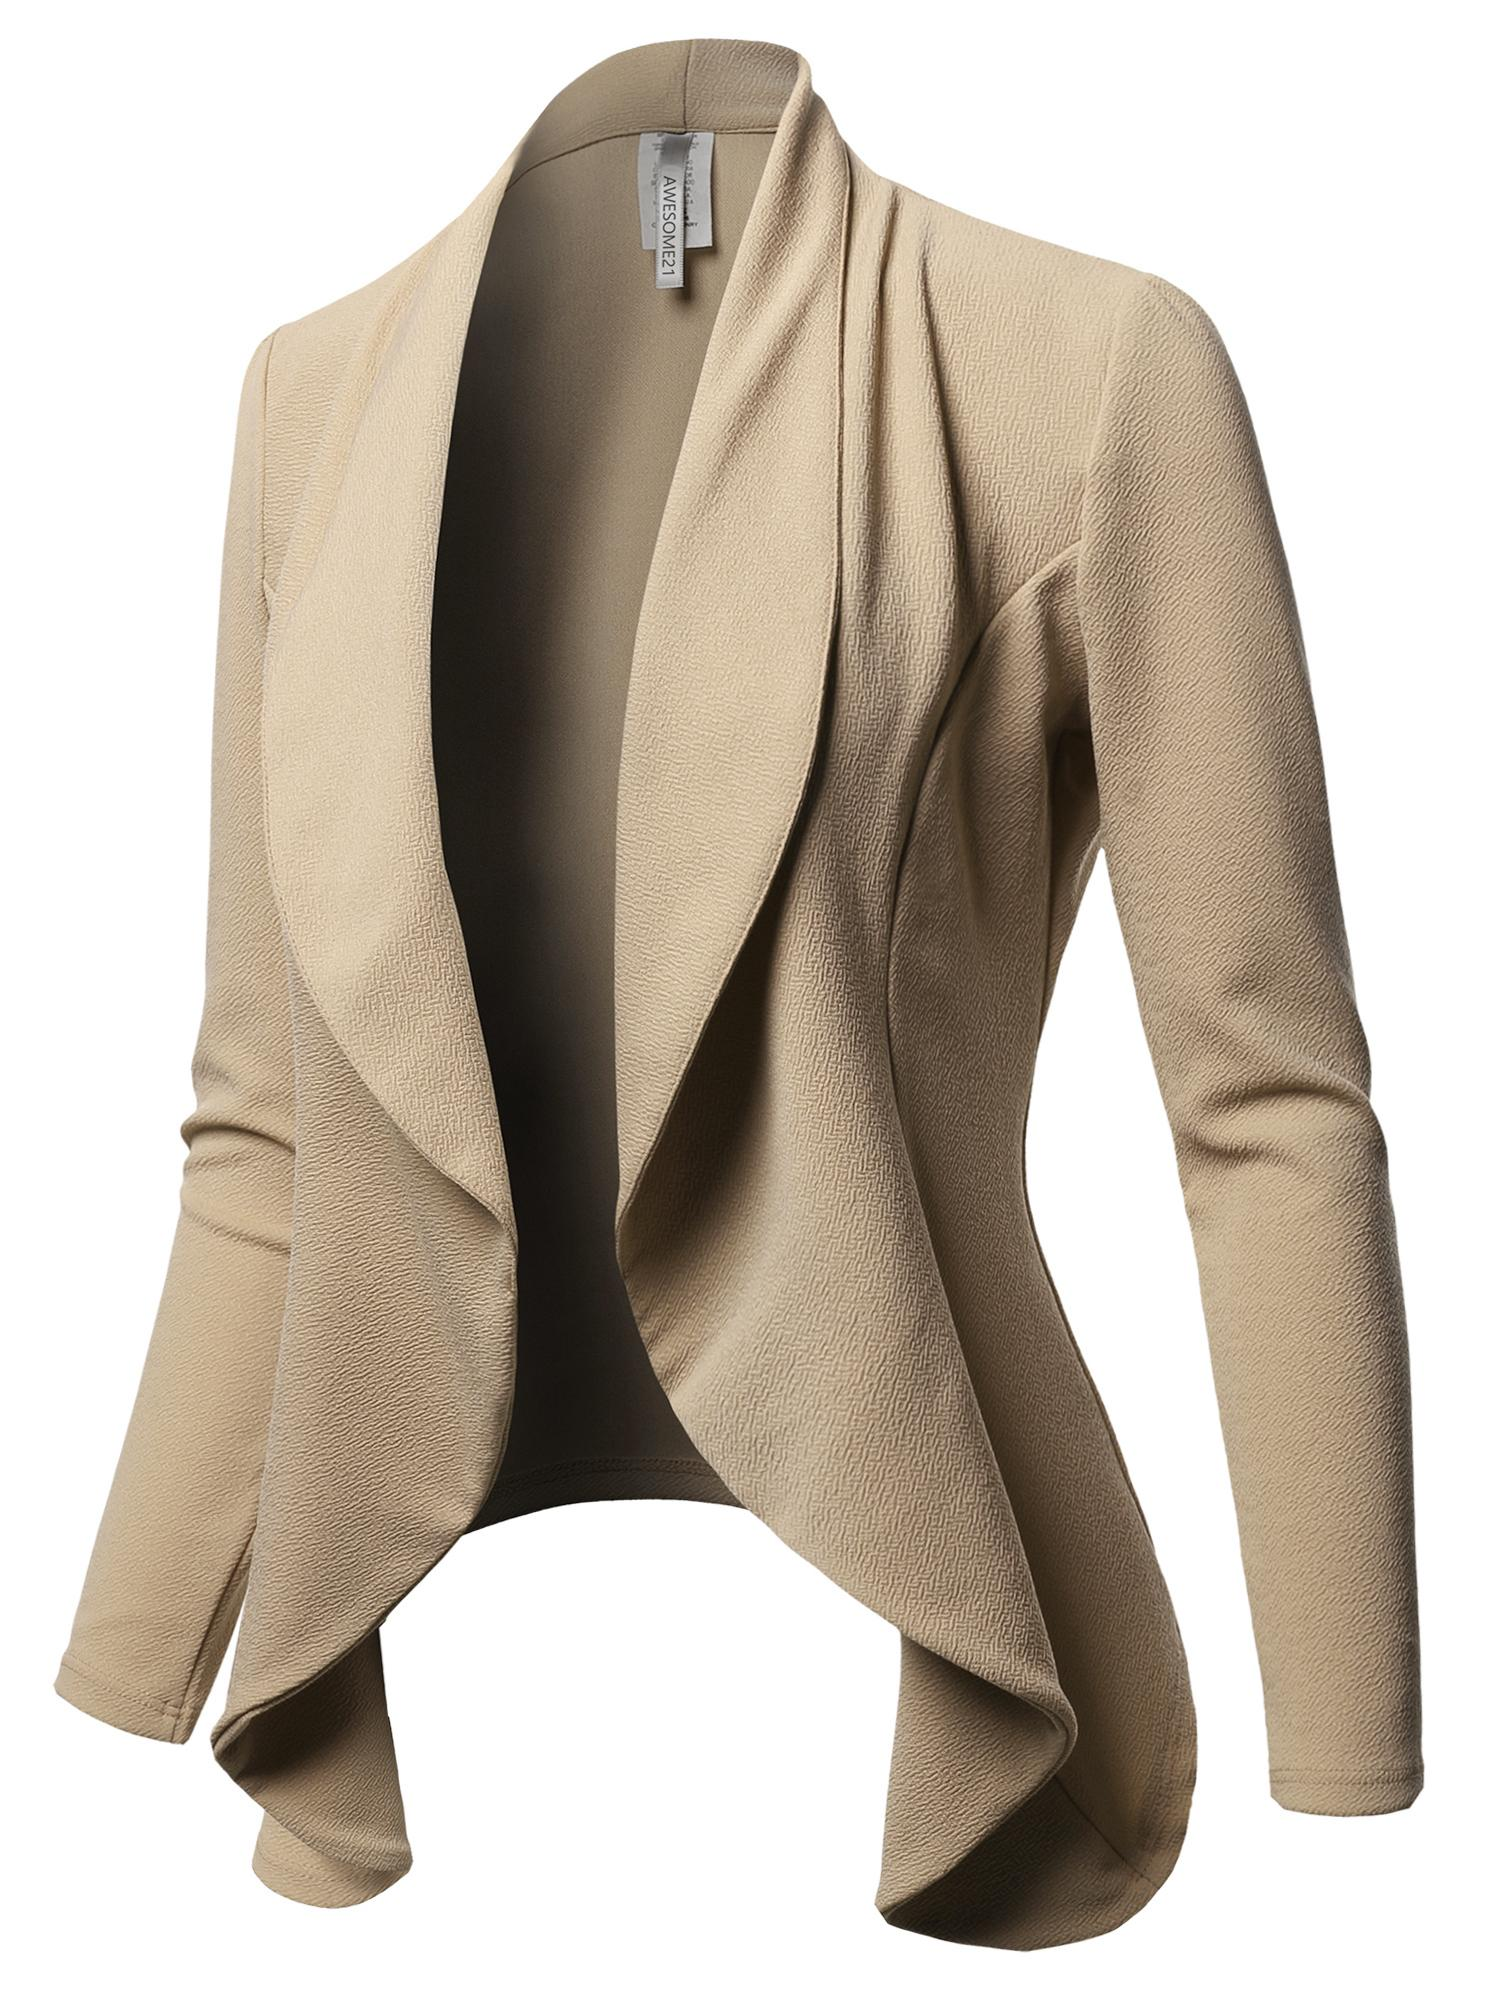 FashionOutfit Women's Solid Formal Office Style Open Front Long Sleeves Blazer - Made in USA